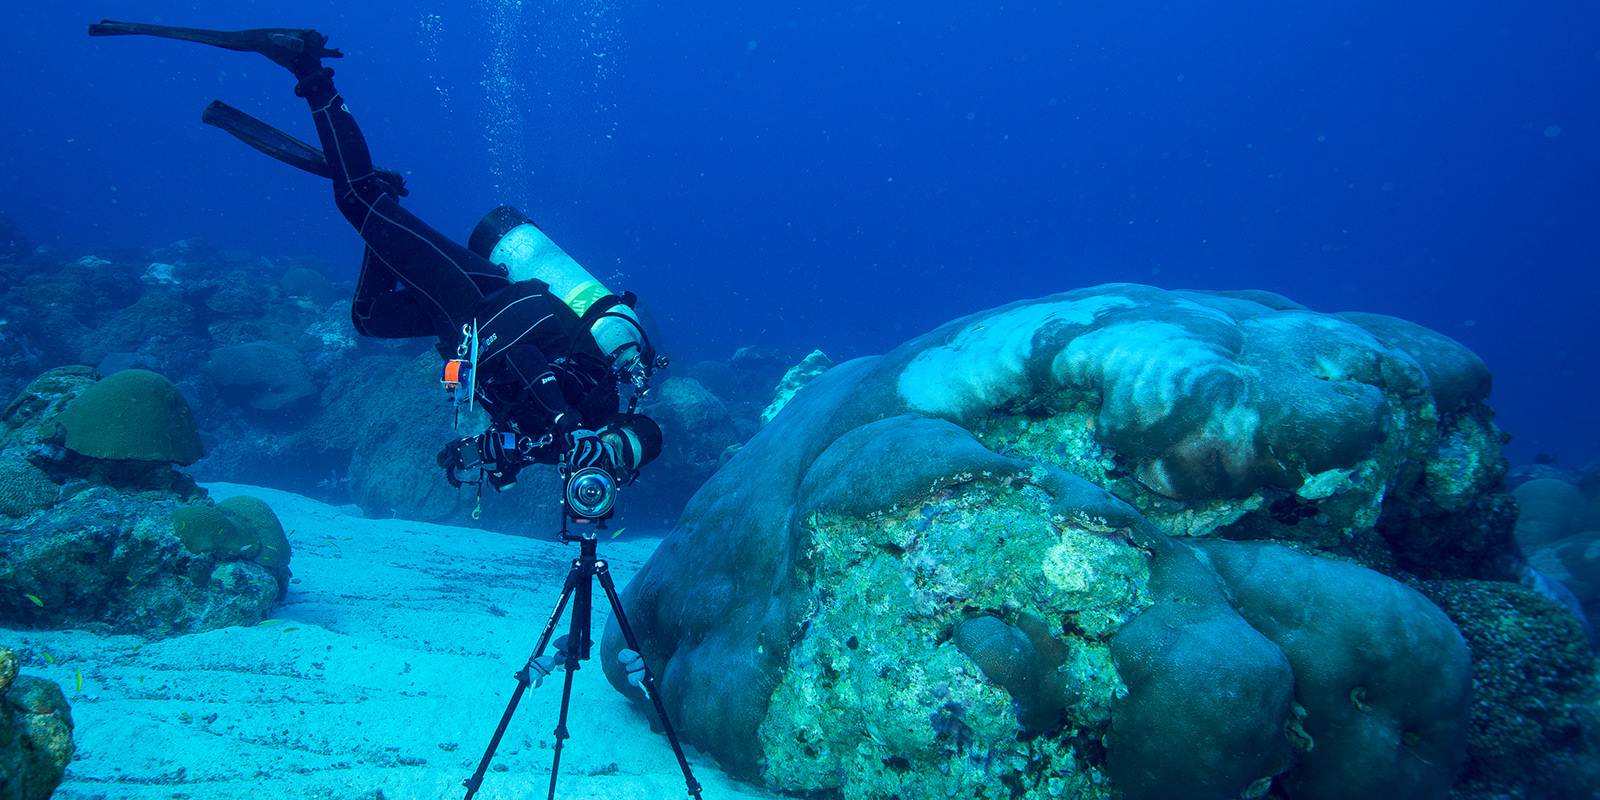 diver taking a photograph